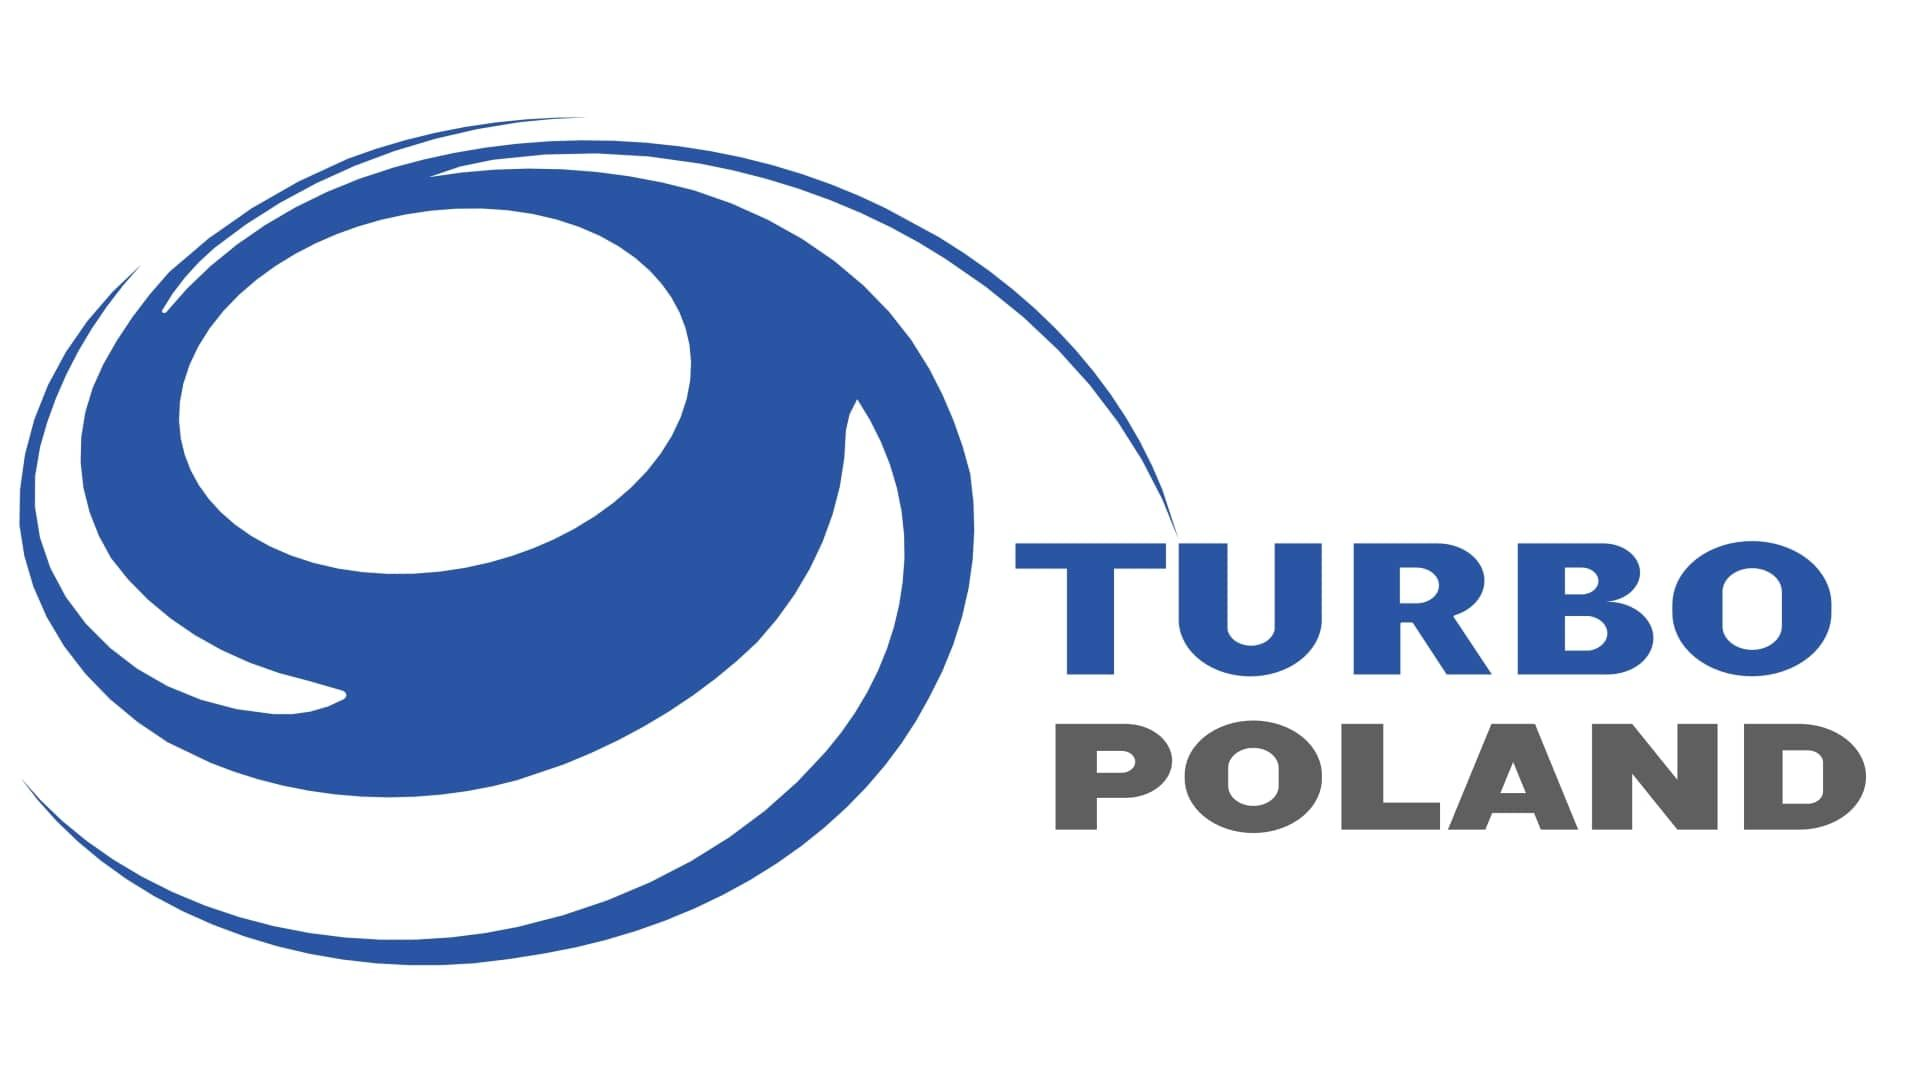 Turbo Poland